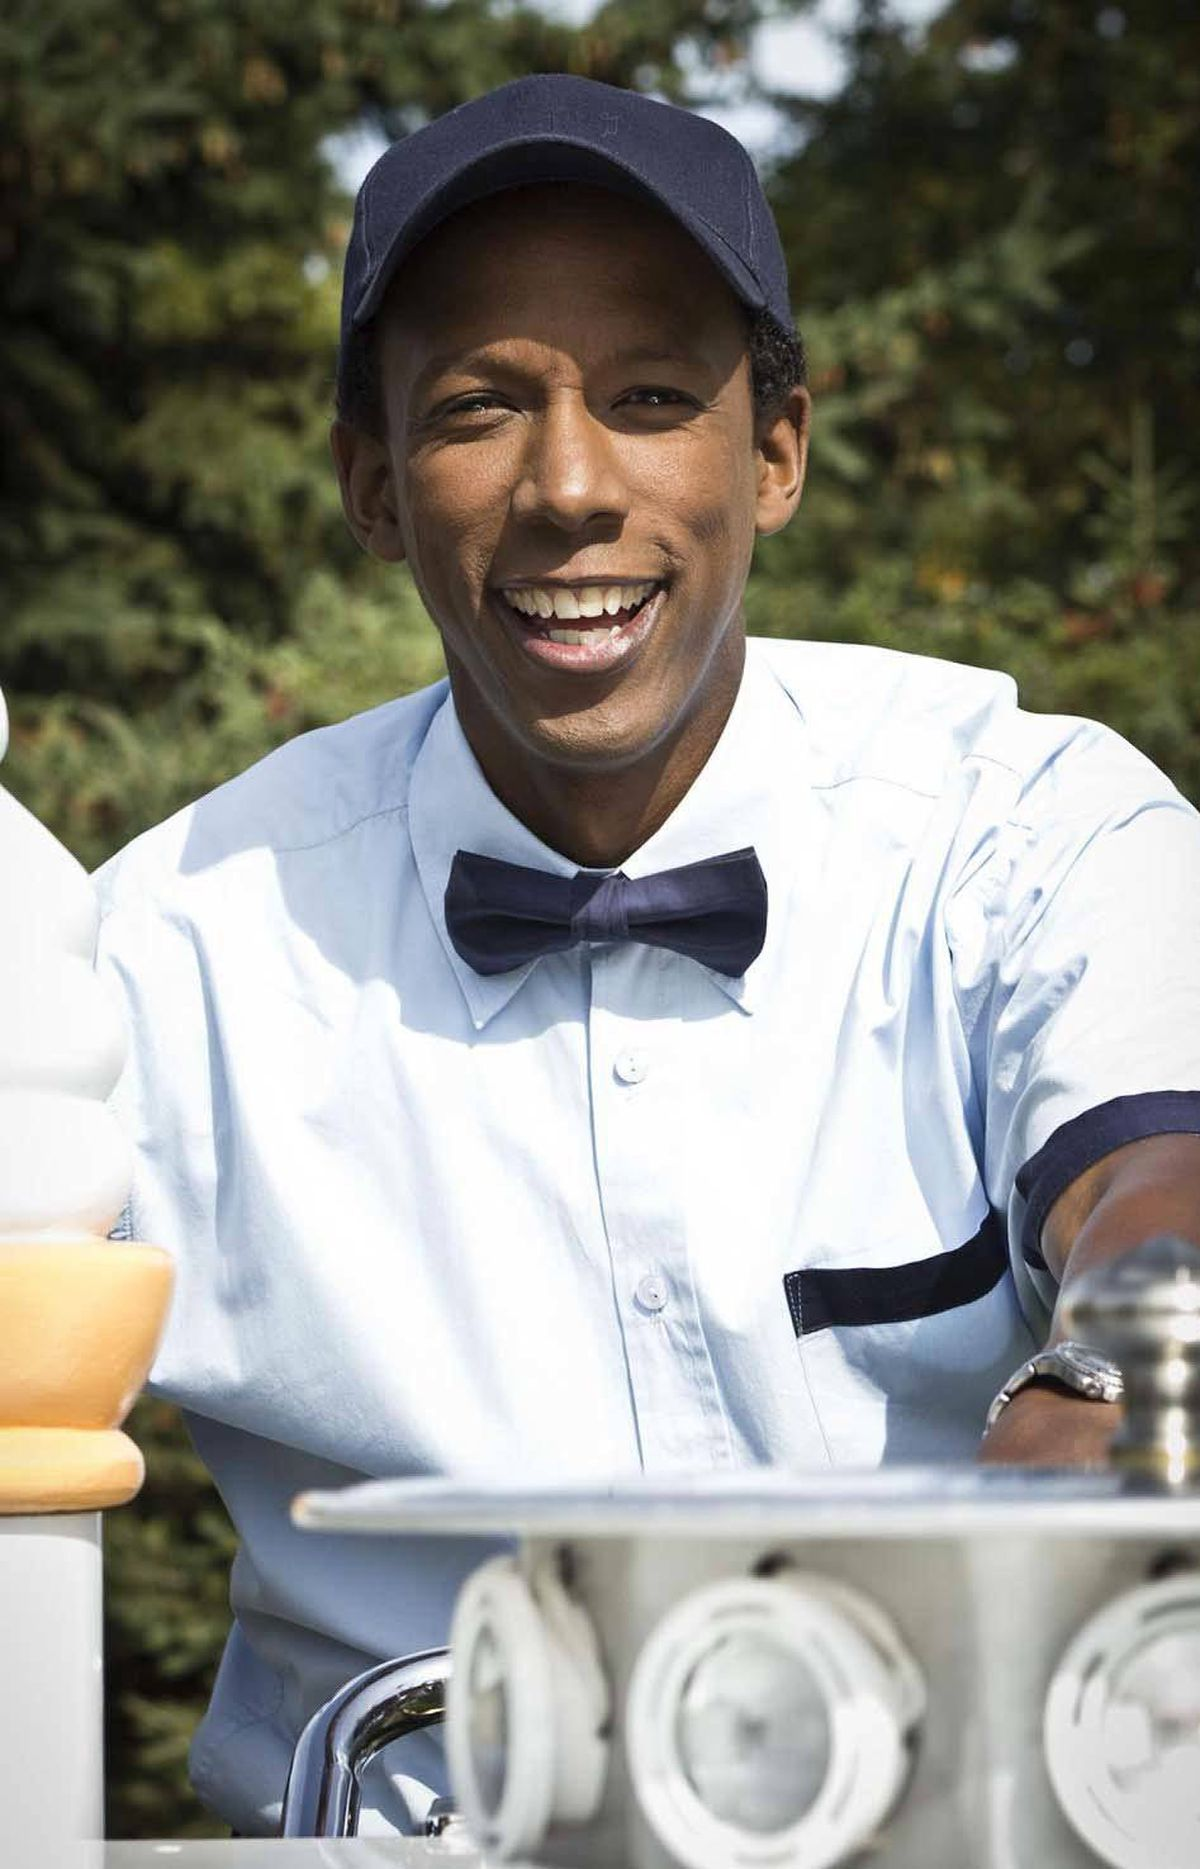 FOOD Ice Cold Cash Food Network, 7 p.m. ET; 4 p.m. PT The ice-cream man cometh – again. Good, clean fun, this Canadian-made show's format features comic actor Joe Motiki riding his ice-cream bike up to strangers in the park and offering them the chance to win cash prizes (and an ice cream!) for answering trivia questions. And for whatever reason, affable Joe has the knack of finding just the right people to take part in the competition. In tonight's first episode, he grills pals Melissa and Rebecca, who simply refuse to work together as a team. In the second show, he quizzes Ruth – the brainiest cheerleader you'll ever meet.